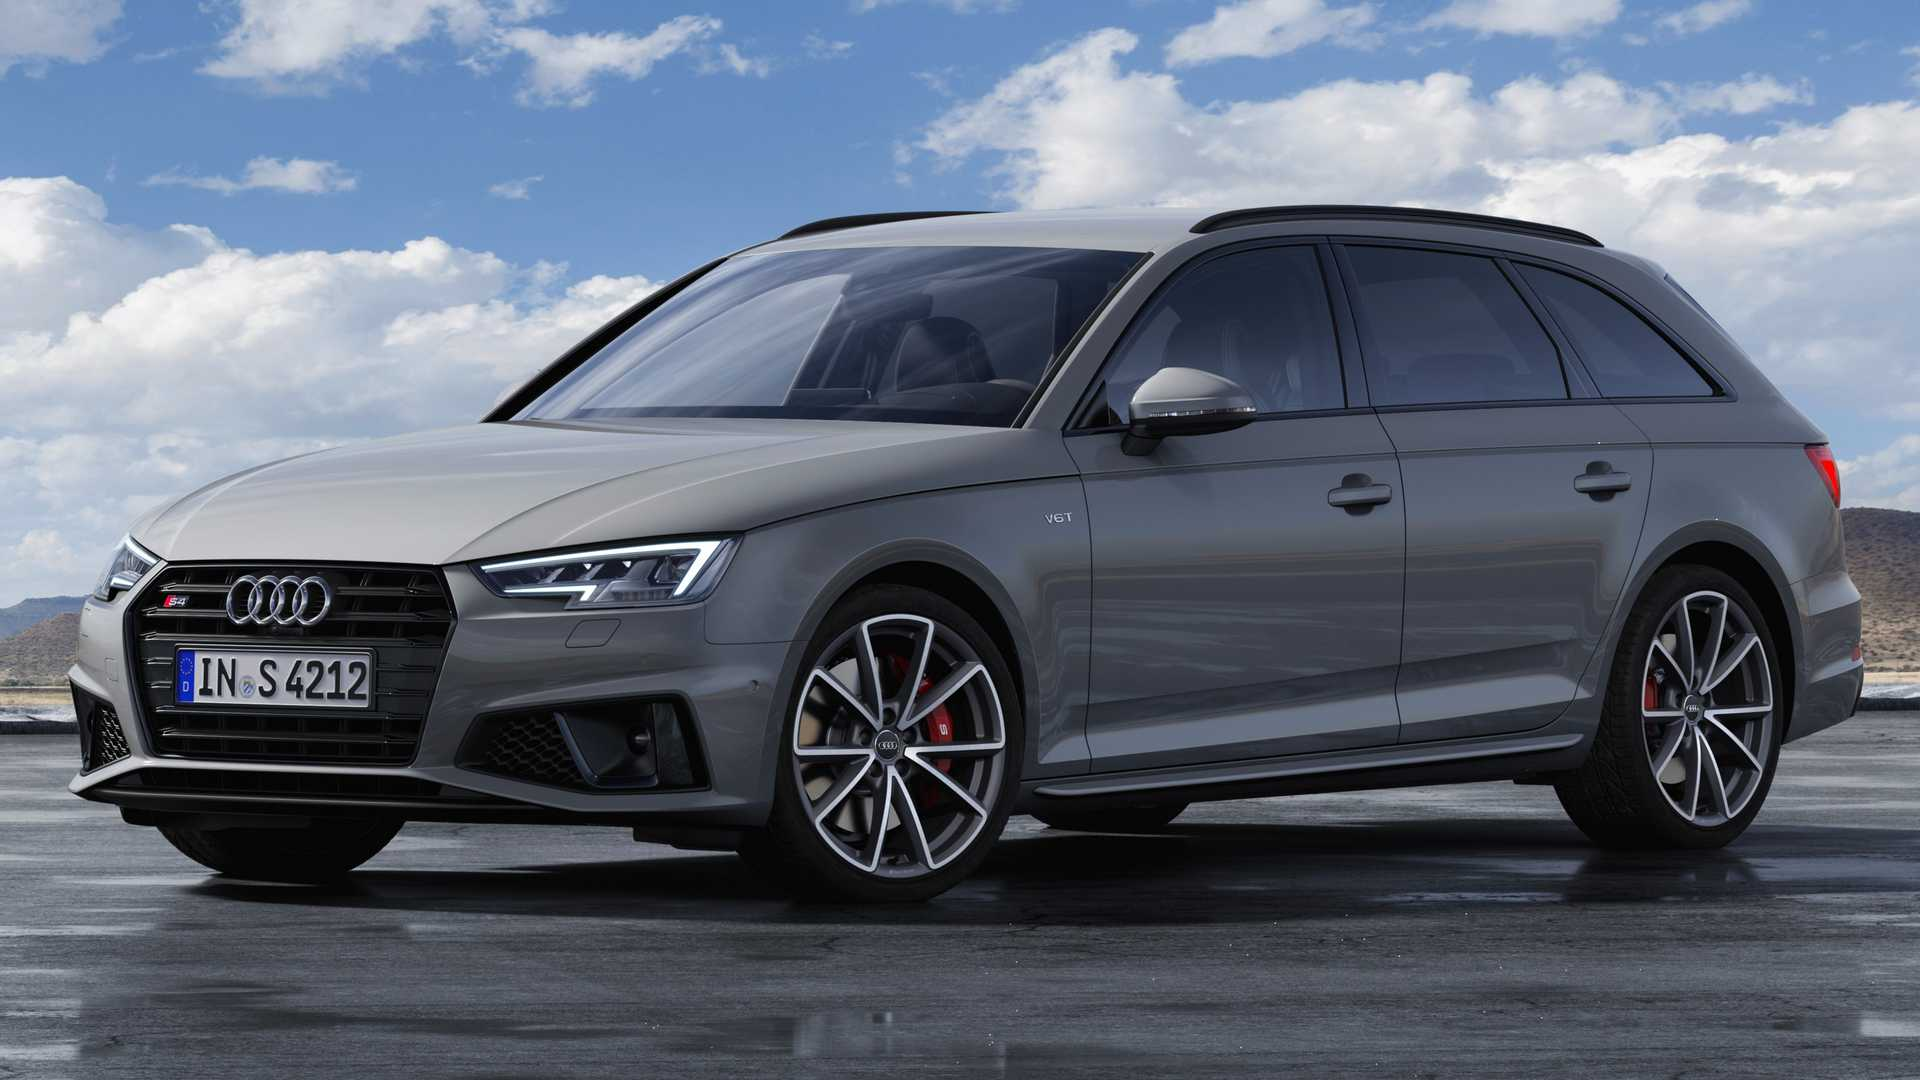 62 Concept of Audi Van 2020 Images with Audi Van 2020